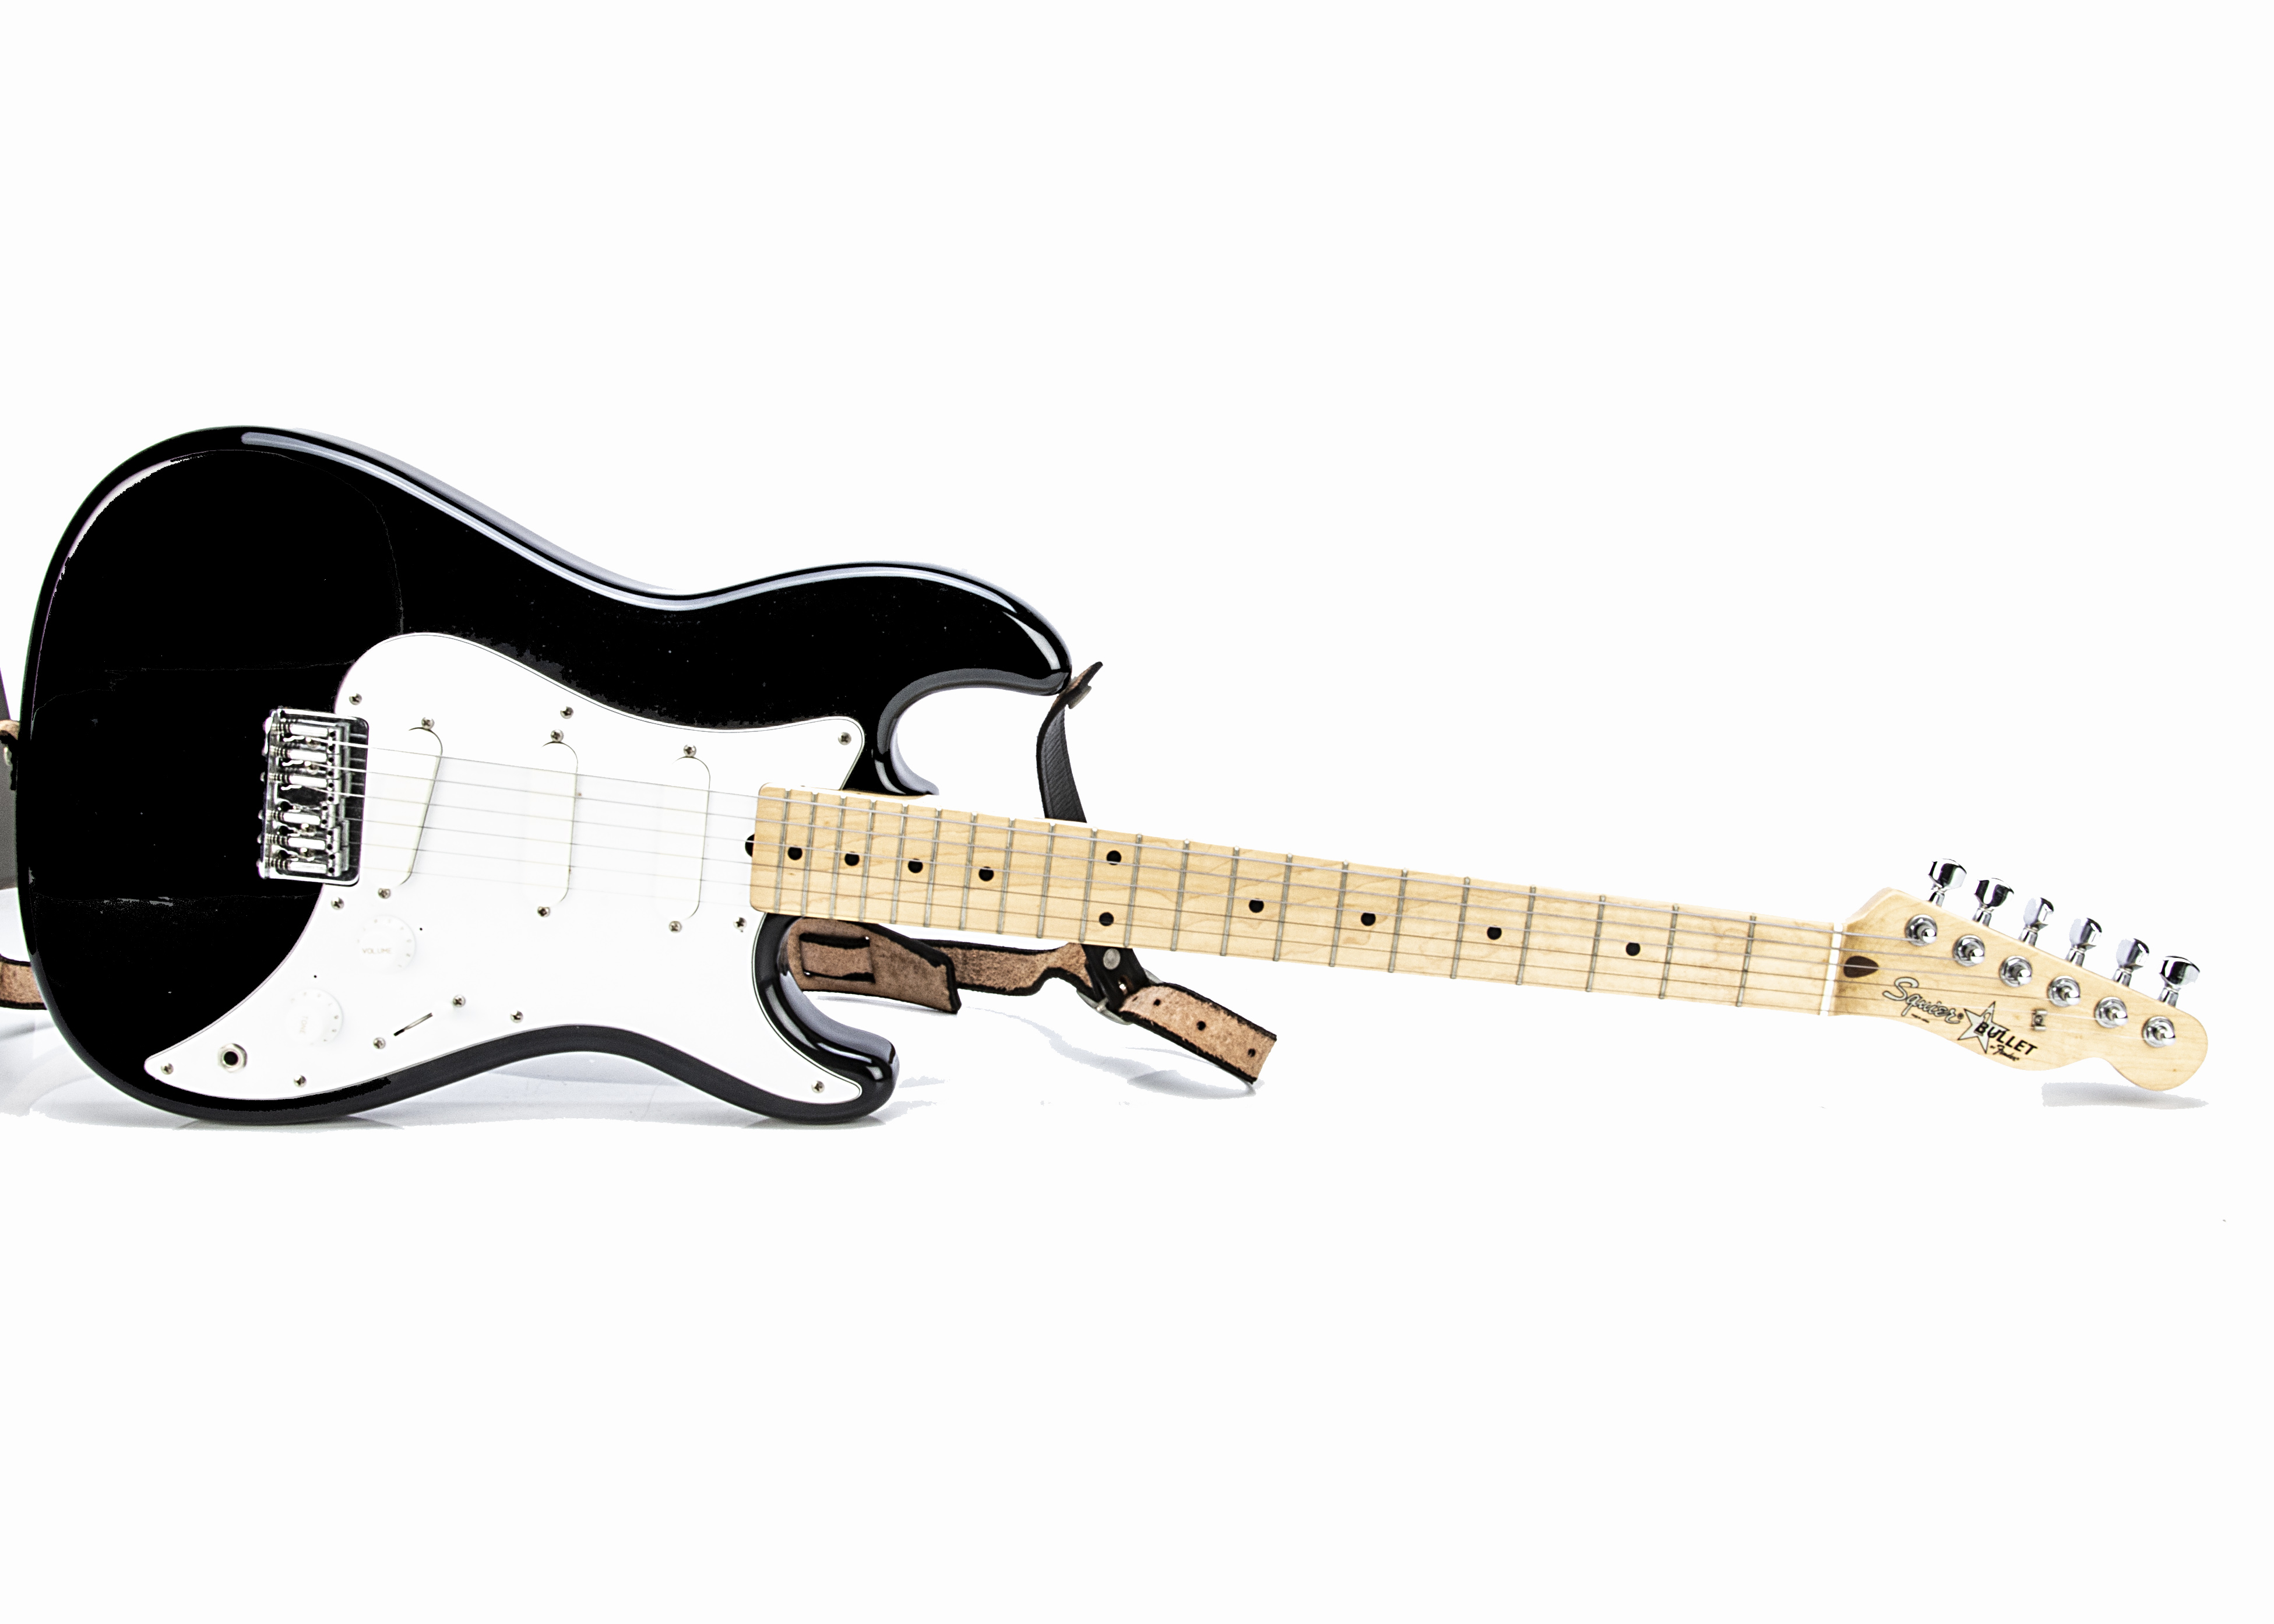 Squier Electric Guitar, a Squier 'Bullet' electric guitar by Fender, made in Japan, with strap, lead